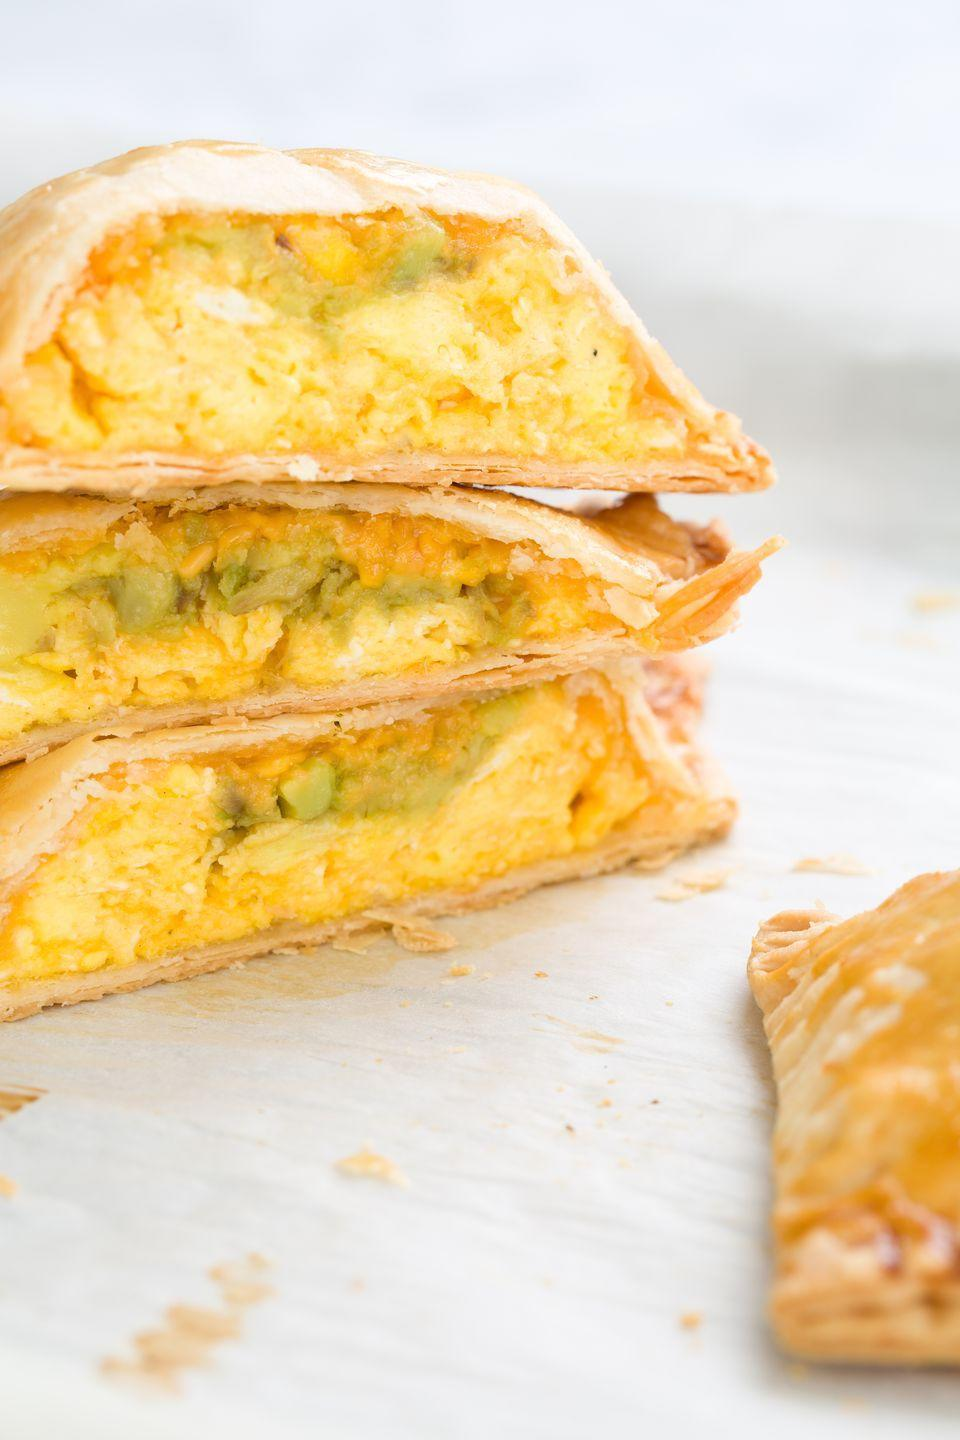 """<p>Stuffed with scrambled eggs, mashed avocado, and cheese, these are better than anything you'll find in the freezer aisle.</p><p>Get the recipe from <a href=""""/cooking/recipe-ideas/recipes/a44098/egg-avocado-and-cheddar-homemade-hot-pockets-recipe/"""" data-ylk=""""slk:Delish"""" class=""""link rapid-noclick-resp"""">Delish</a>.</p>"""